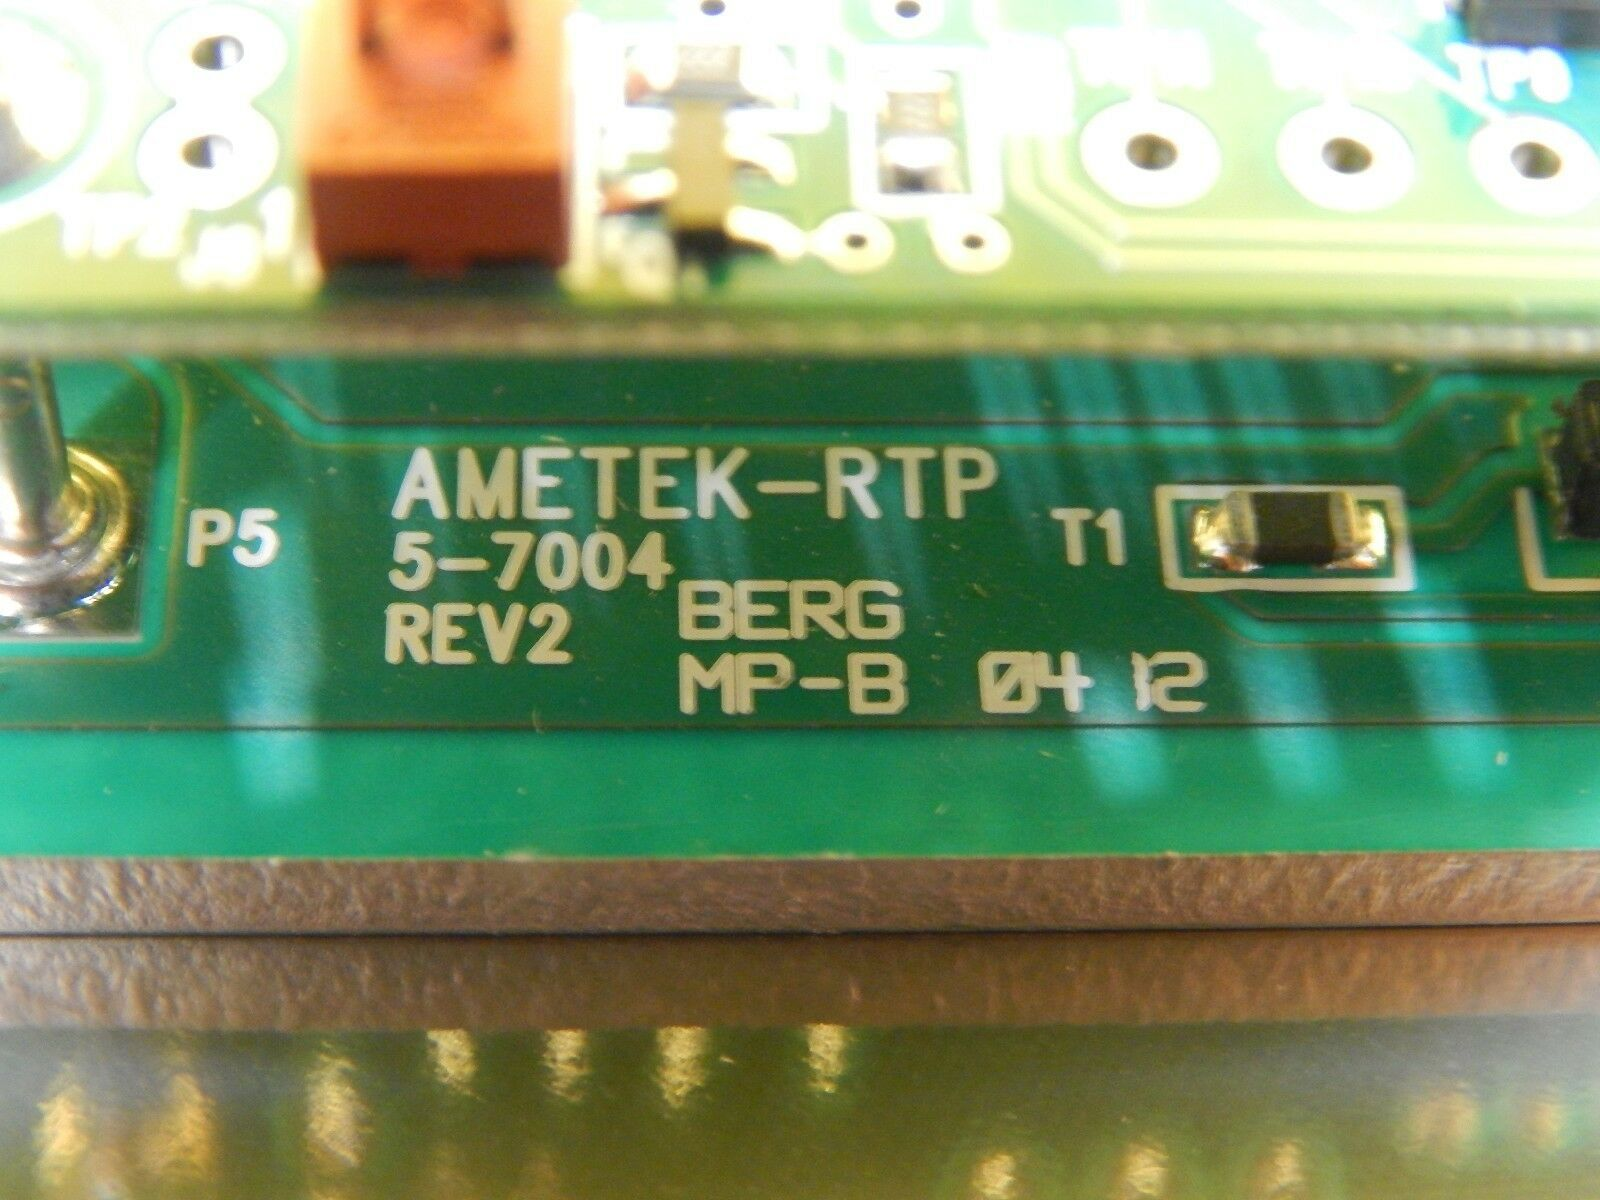 Ametek 5-7004 AMETEK-RTP Fan Control PCB Assembly 5-7006 Used Working